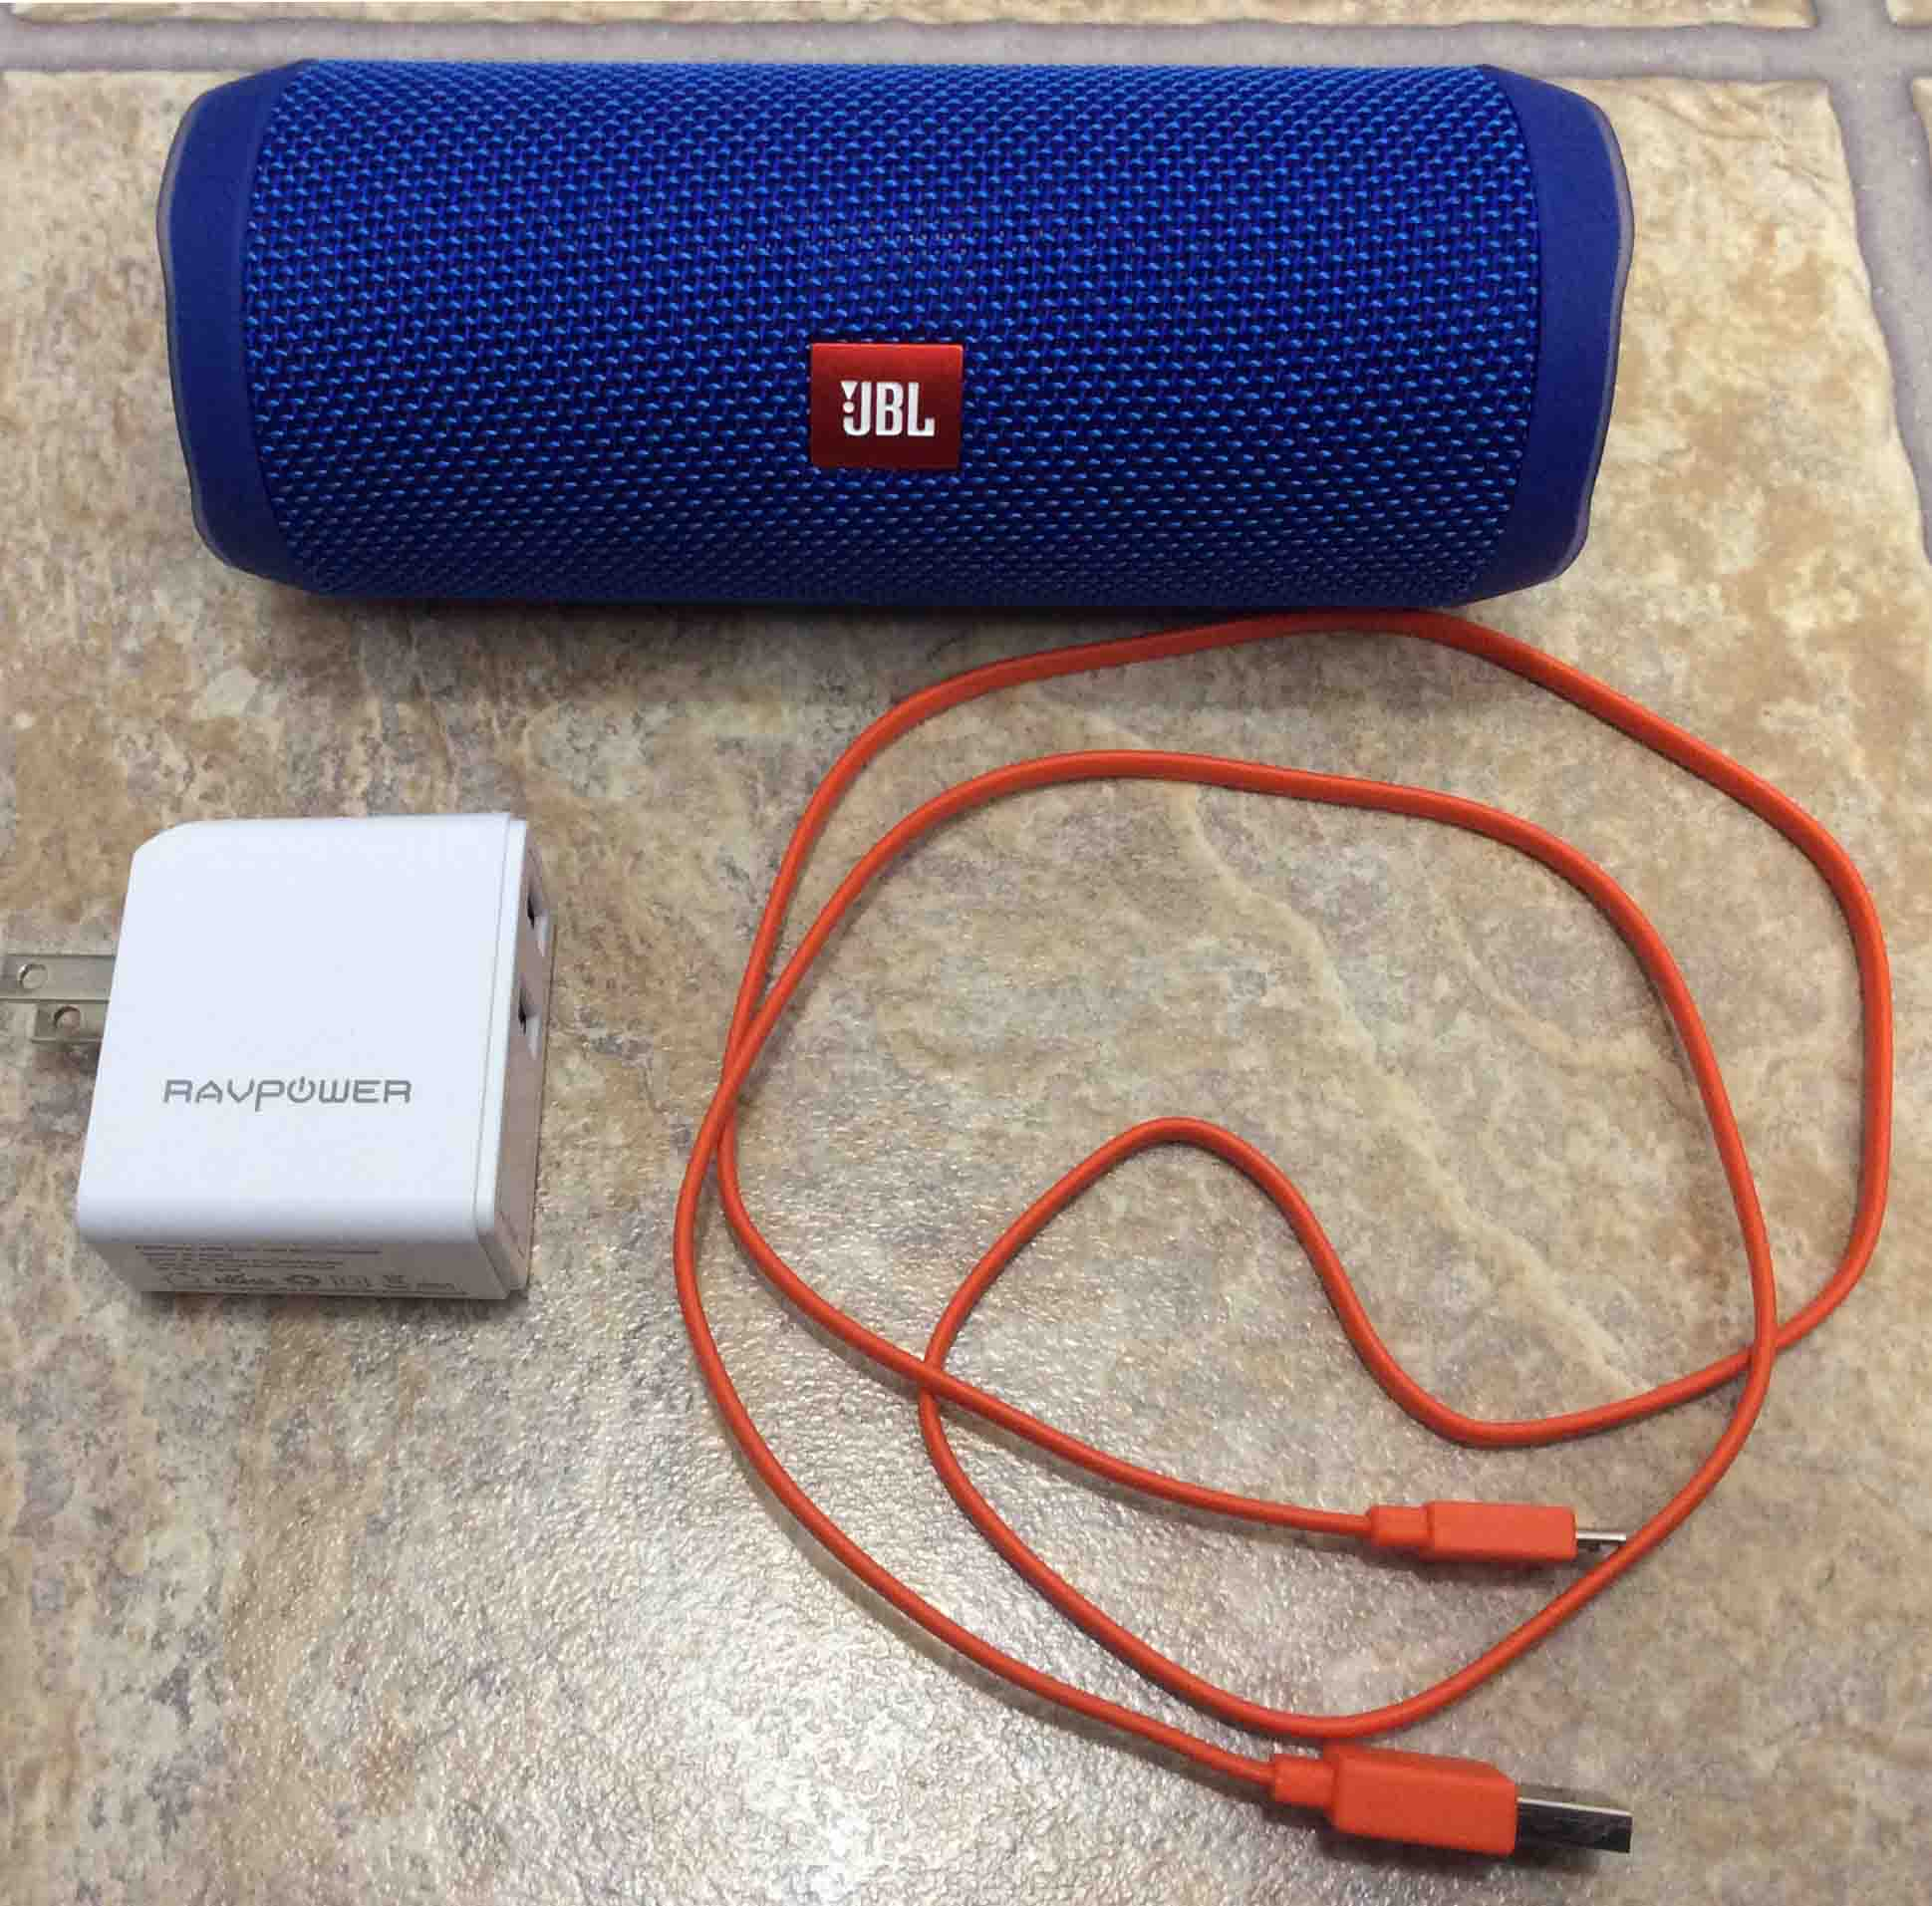 8333a7c29a1 JBL Flip 4 portable speaker with a RavPower USB charger and micro USB charge  cable.